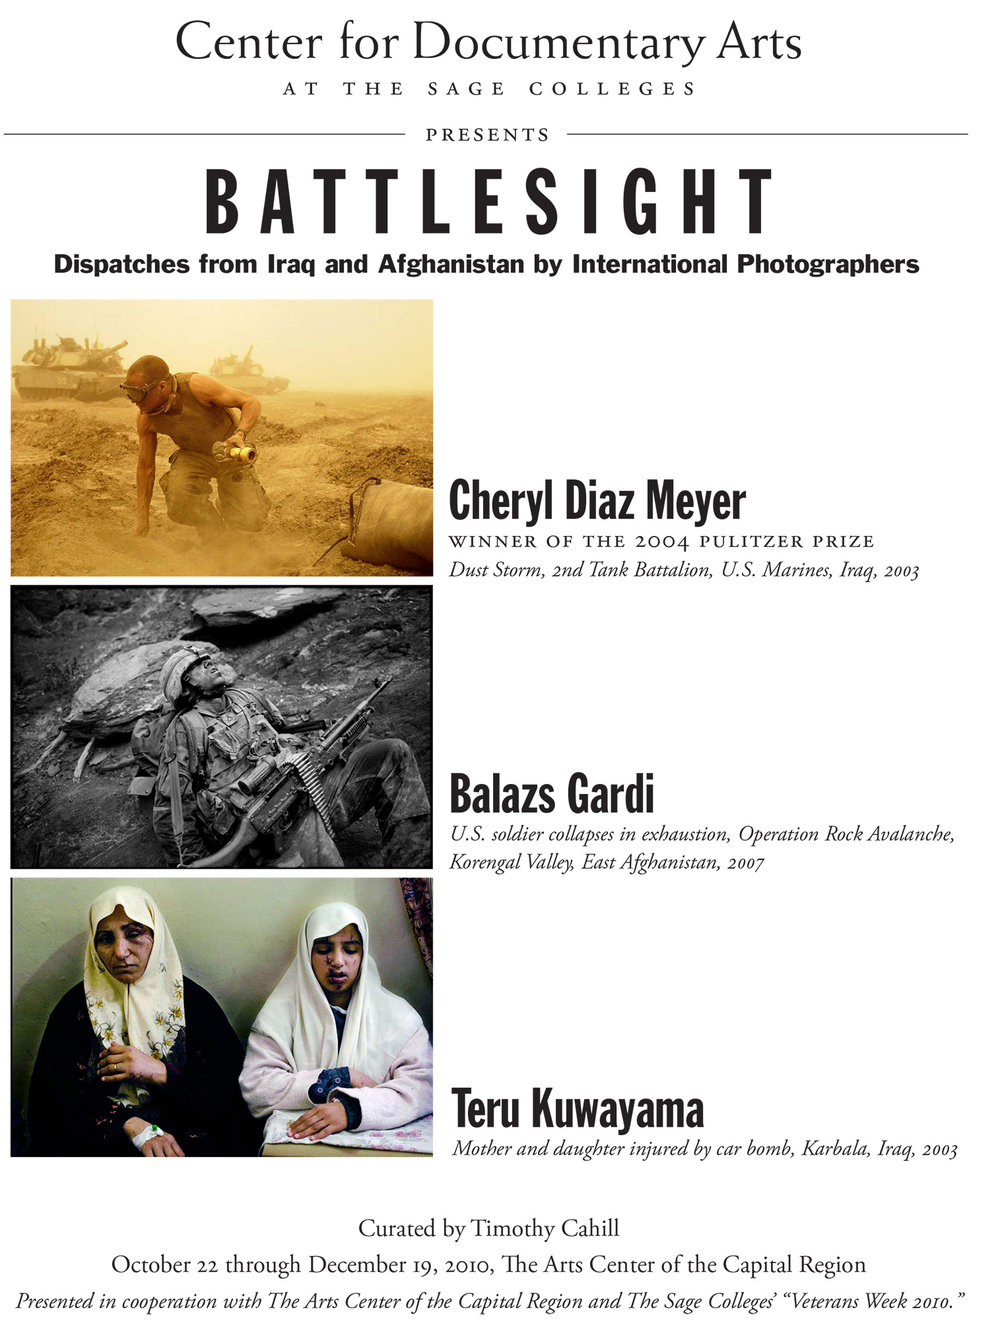 - BATTLESIGHT, THE SAGE COLLEGESExhibit and Dispatches by International Photographers,  2010, Oct.